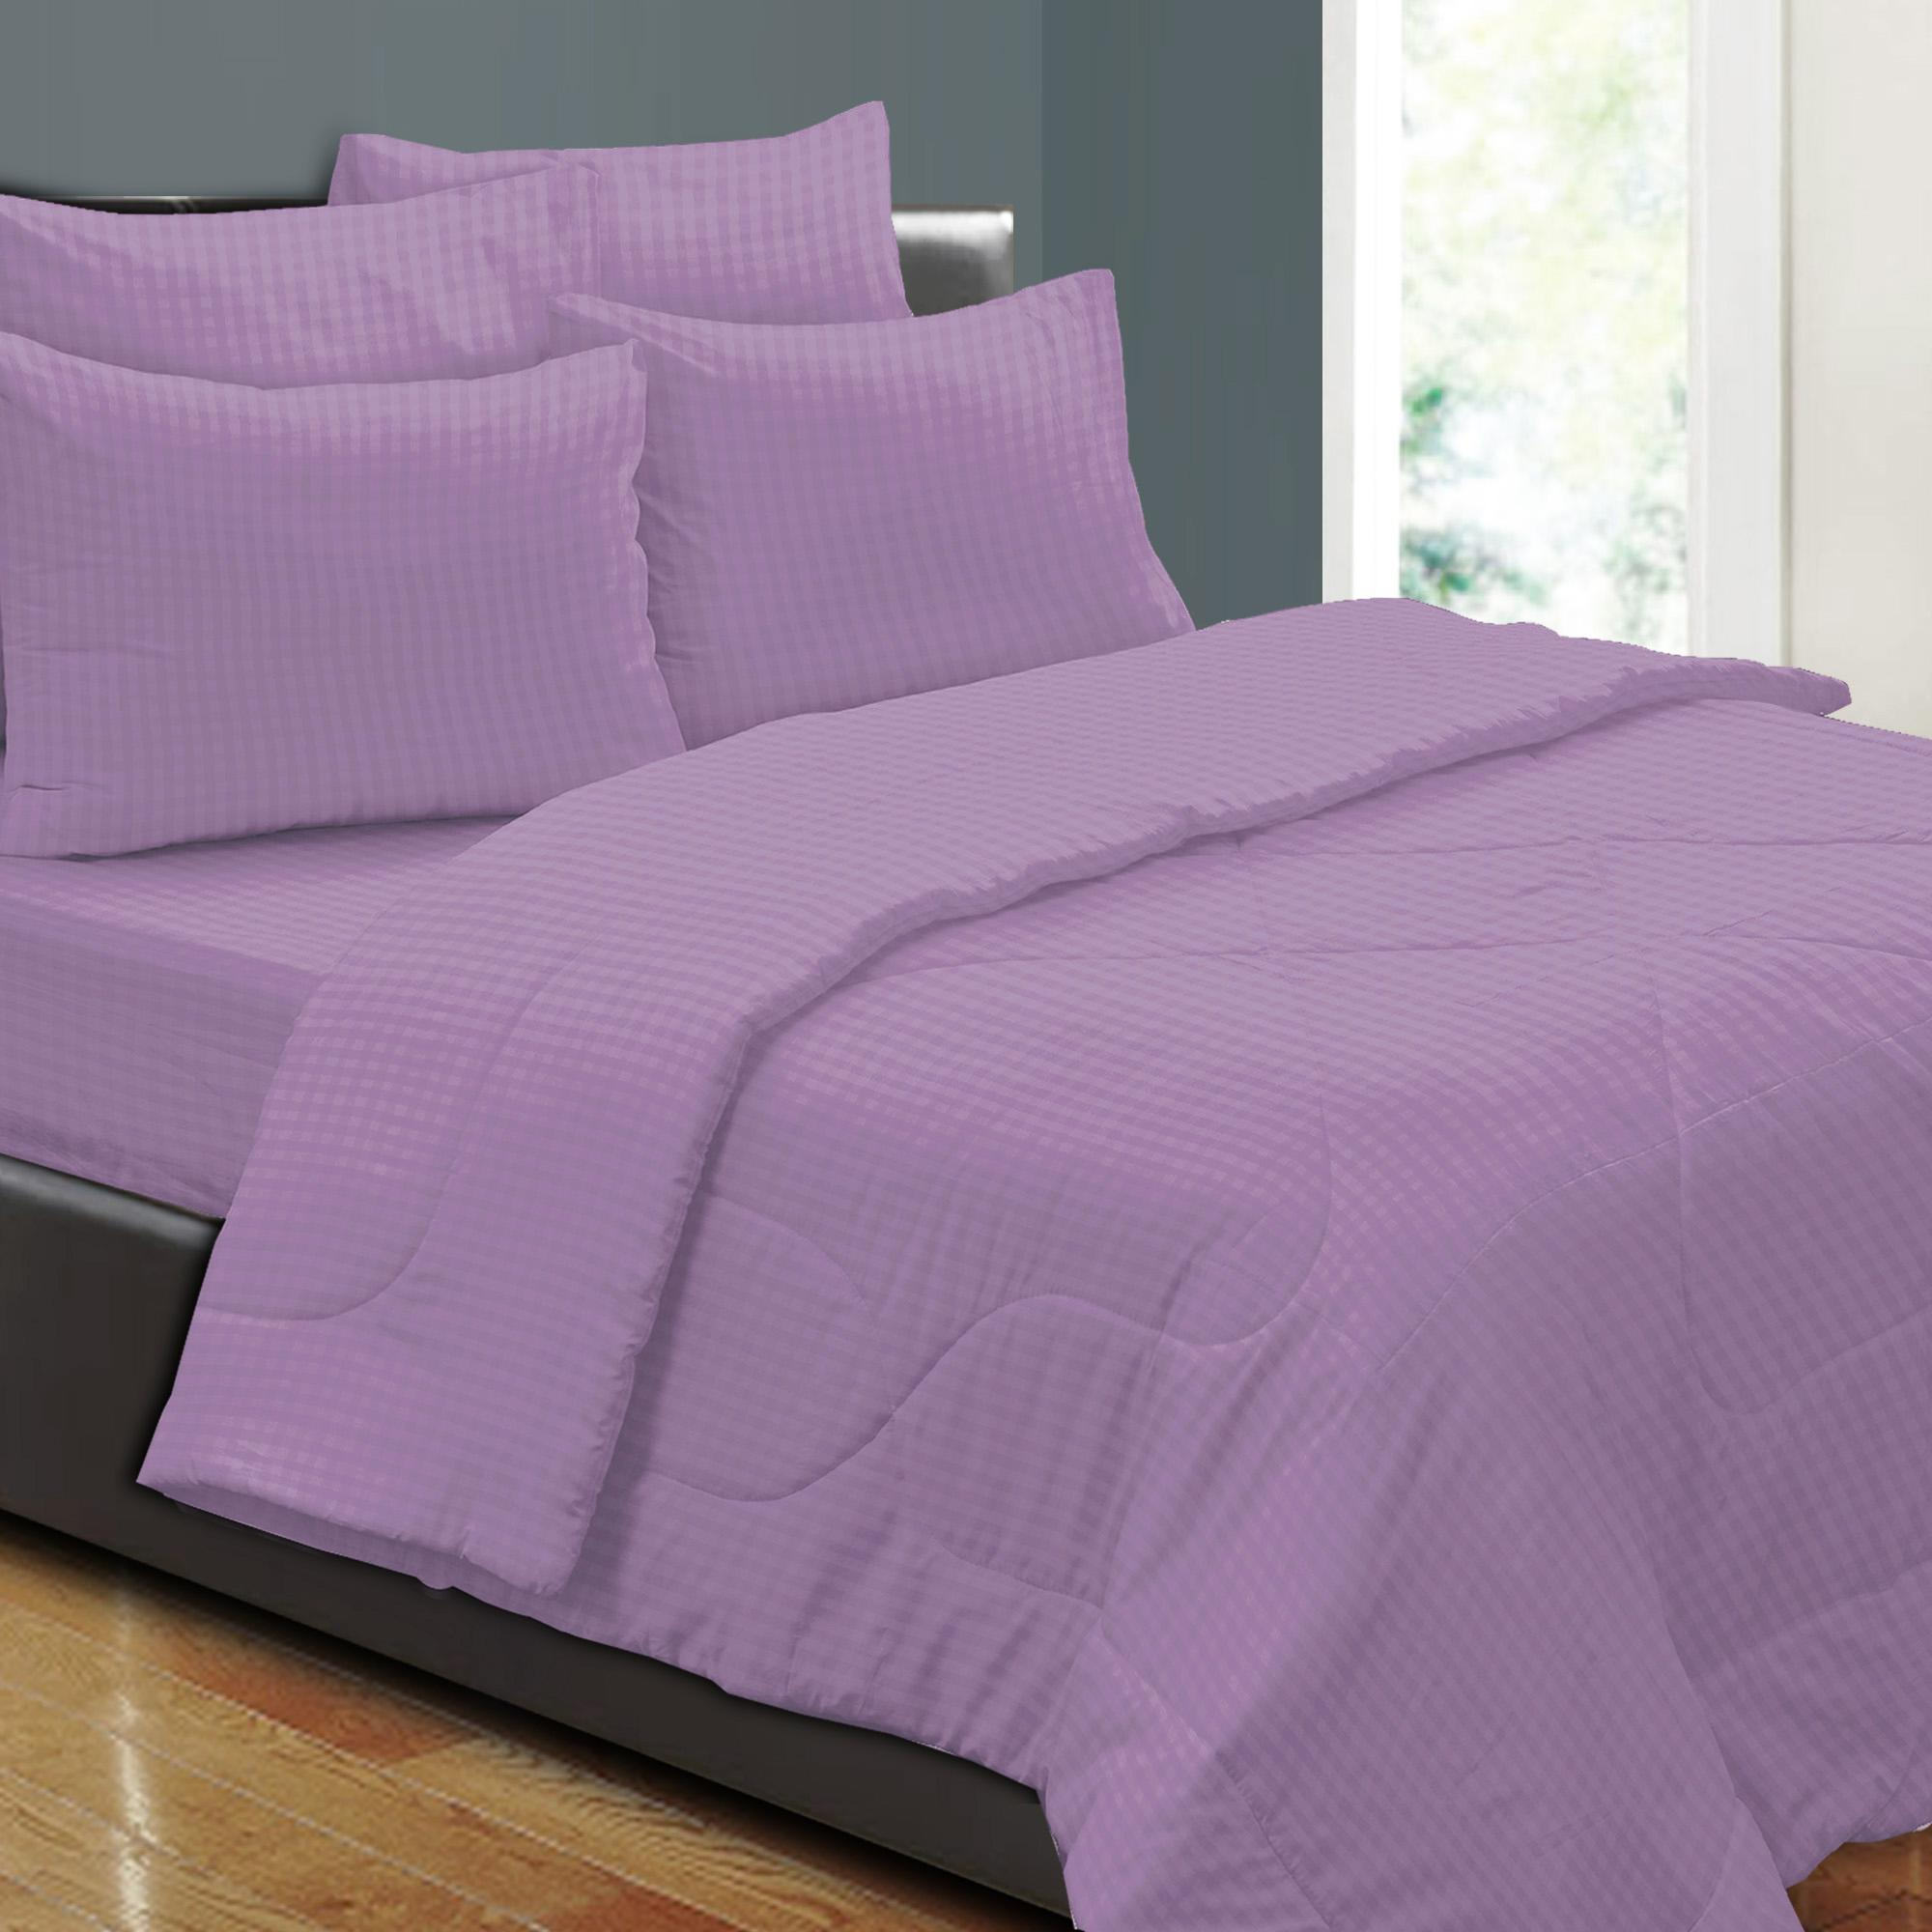 Essina 100% Cotton 620TC Fitted Bed sheet set SIMPLICITY LAVENDER - Super Single size